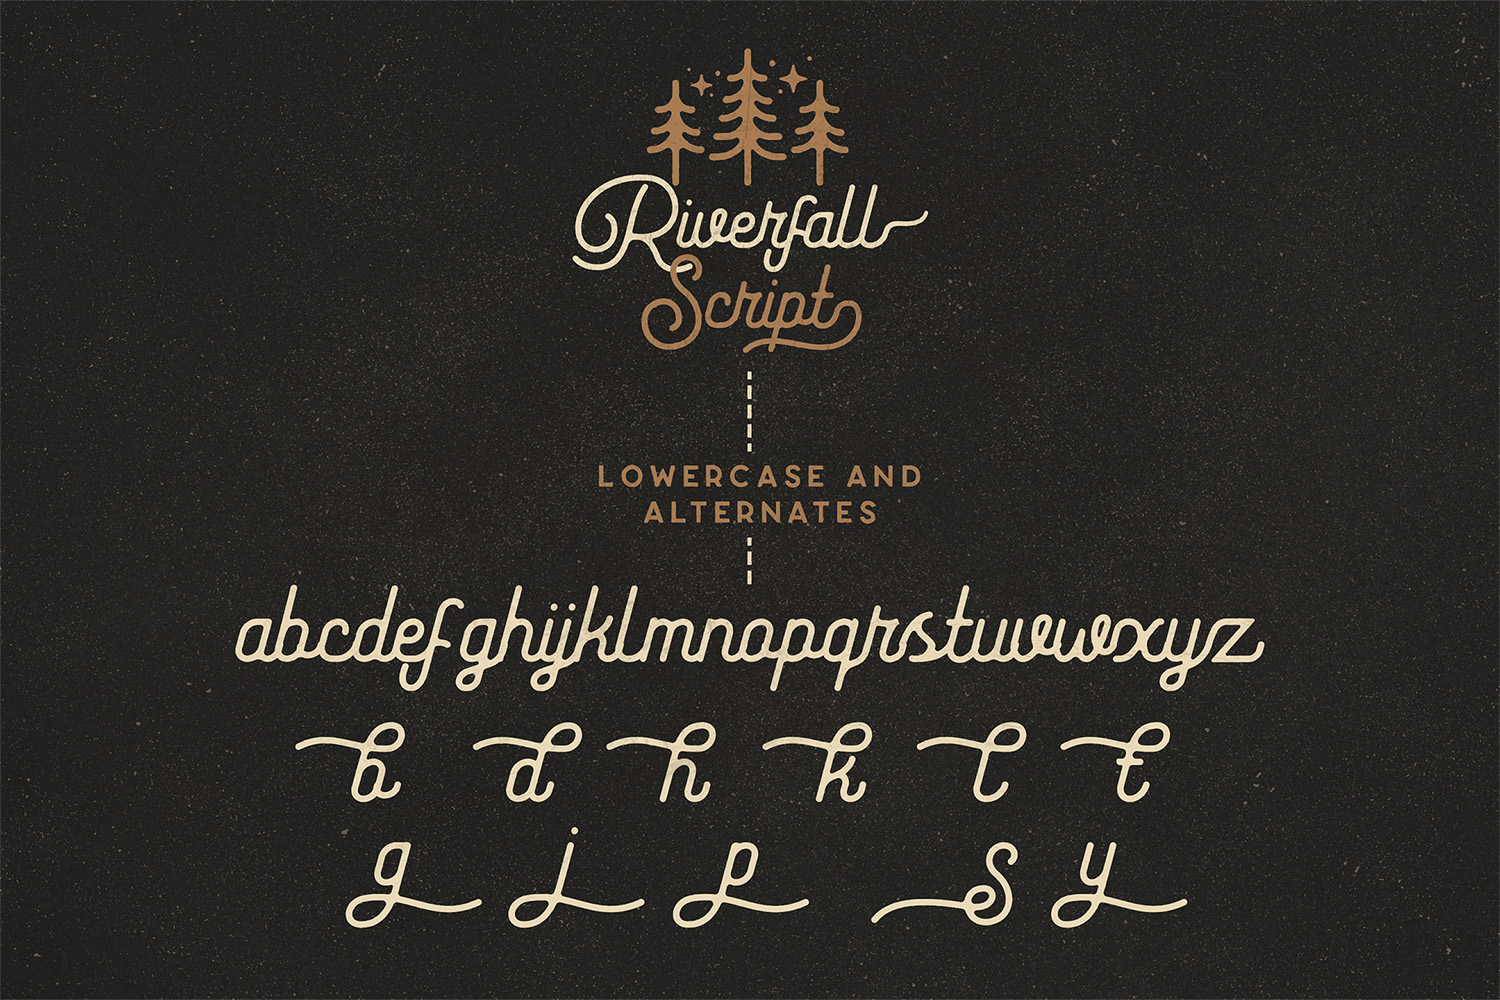 Riverfall Semi rounded Script and Sans Ver.2 example image 14